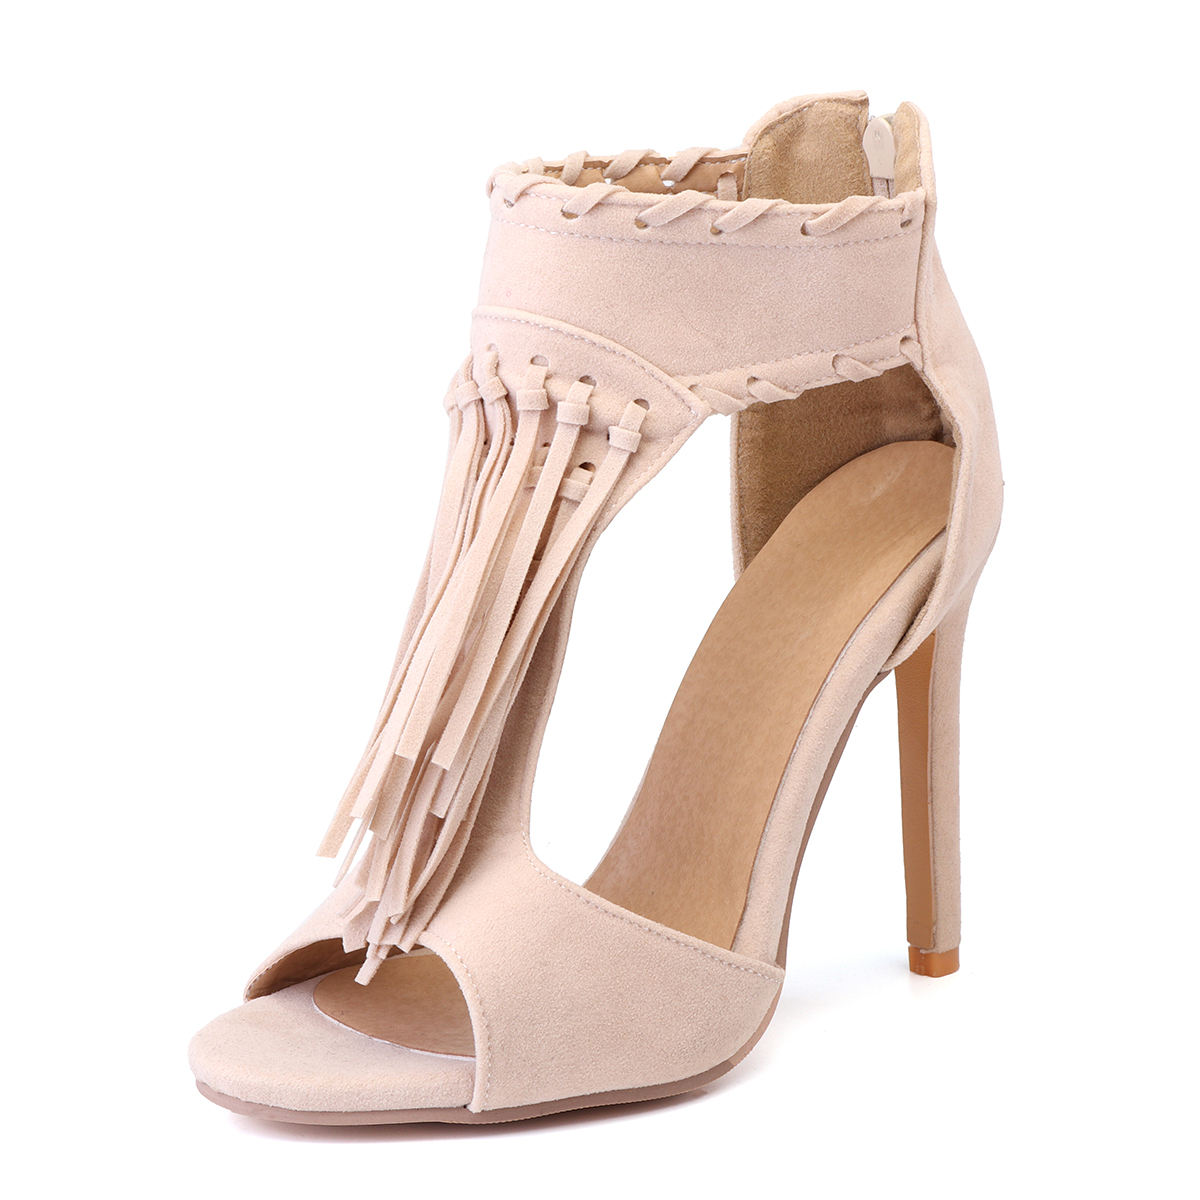 Women-Summer-Peep-Toe-Strappy-High-Heels-Tassels-Ankle-Sandals-Casual-Shoes-New